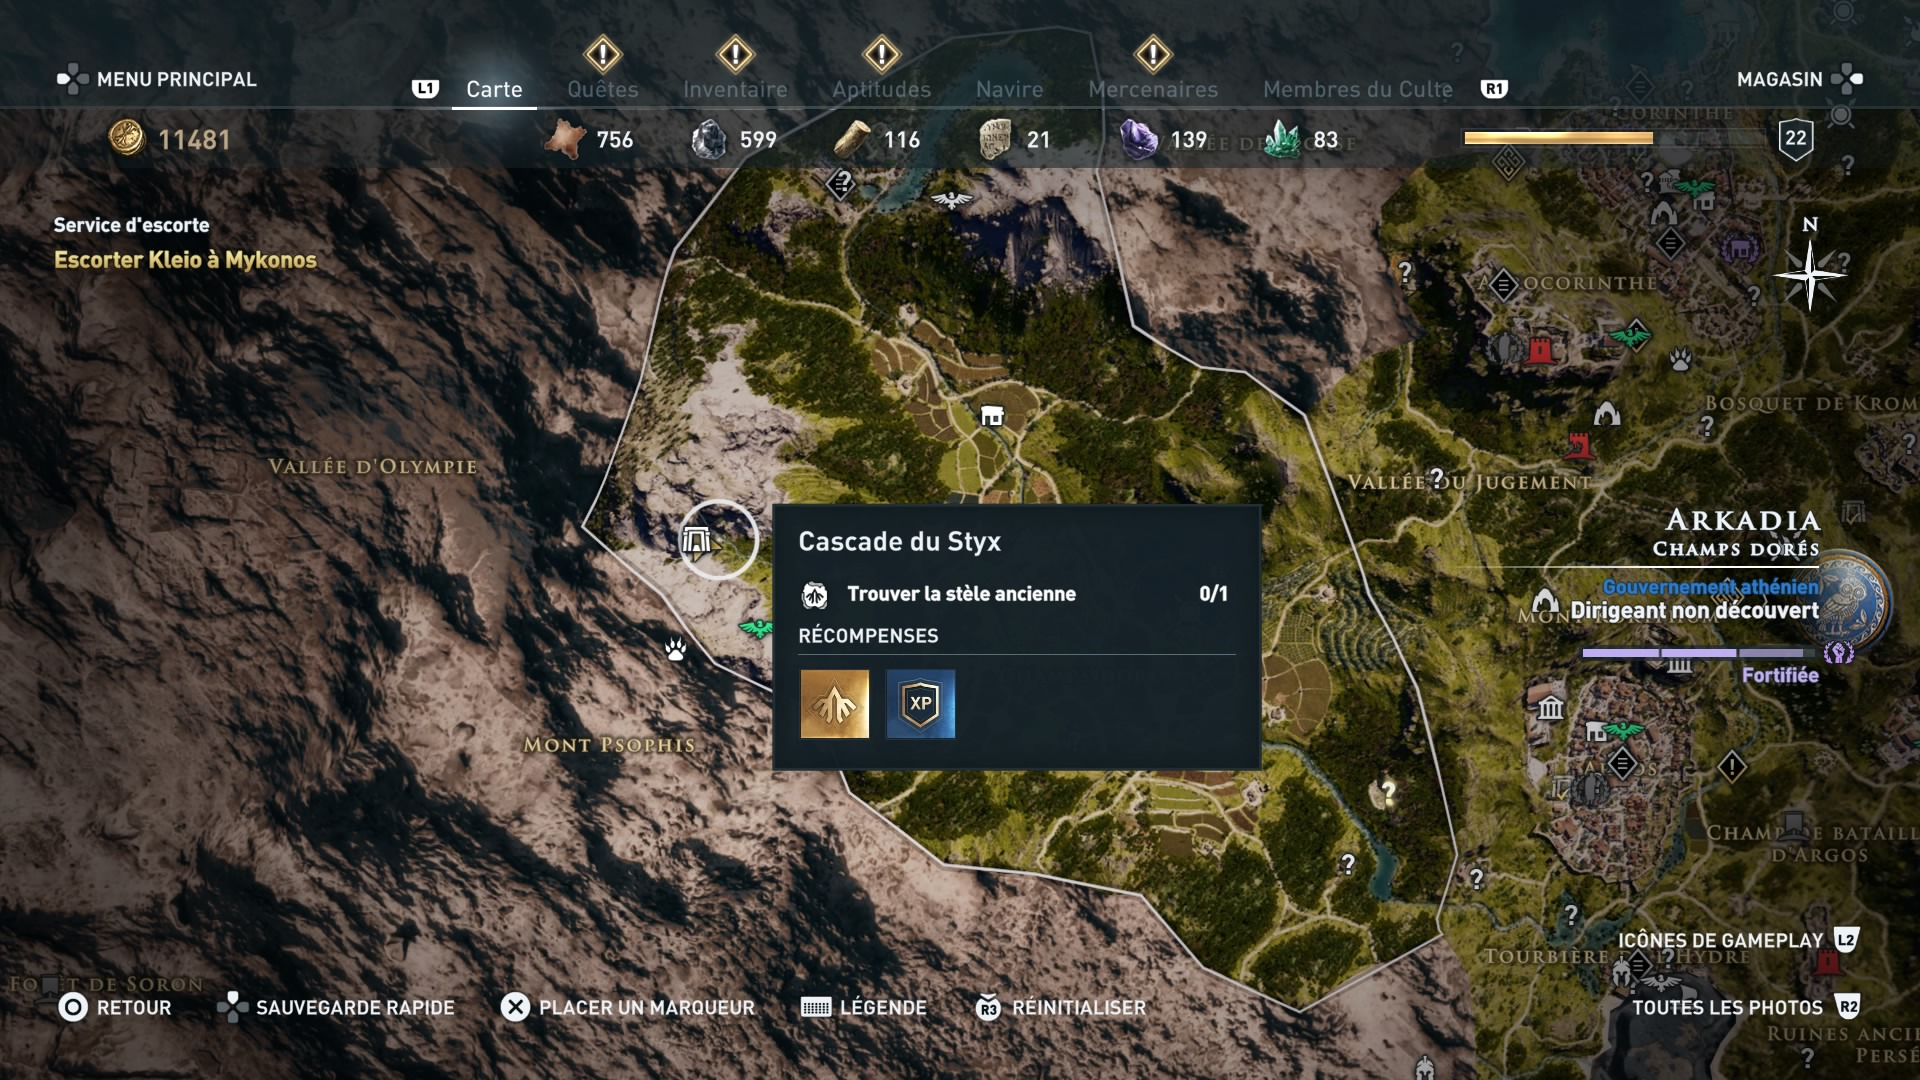 assassin's creed odyssey, ps4, xbox one, pc,u ubisosft, soluce, astuce, emplacement tombeau et stèle anciennes d'arkadia, cascade du styx